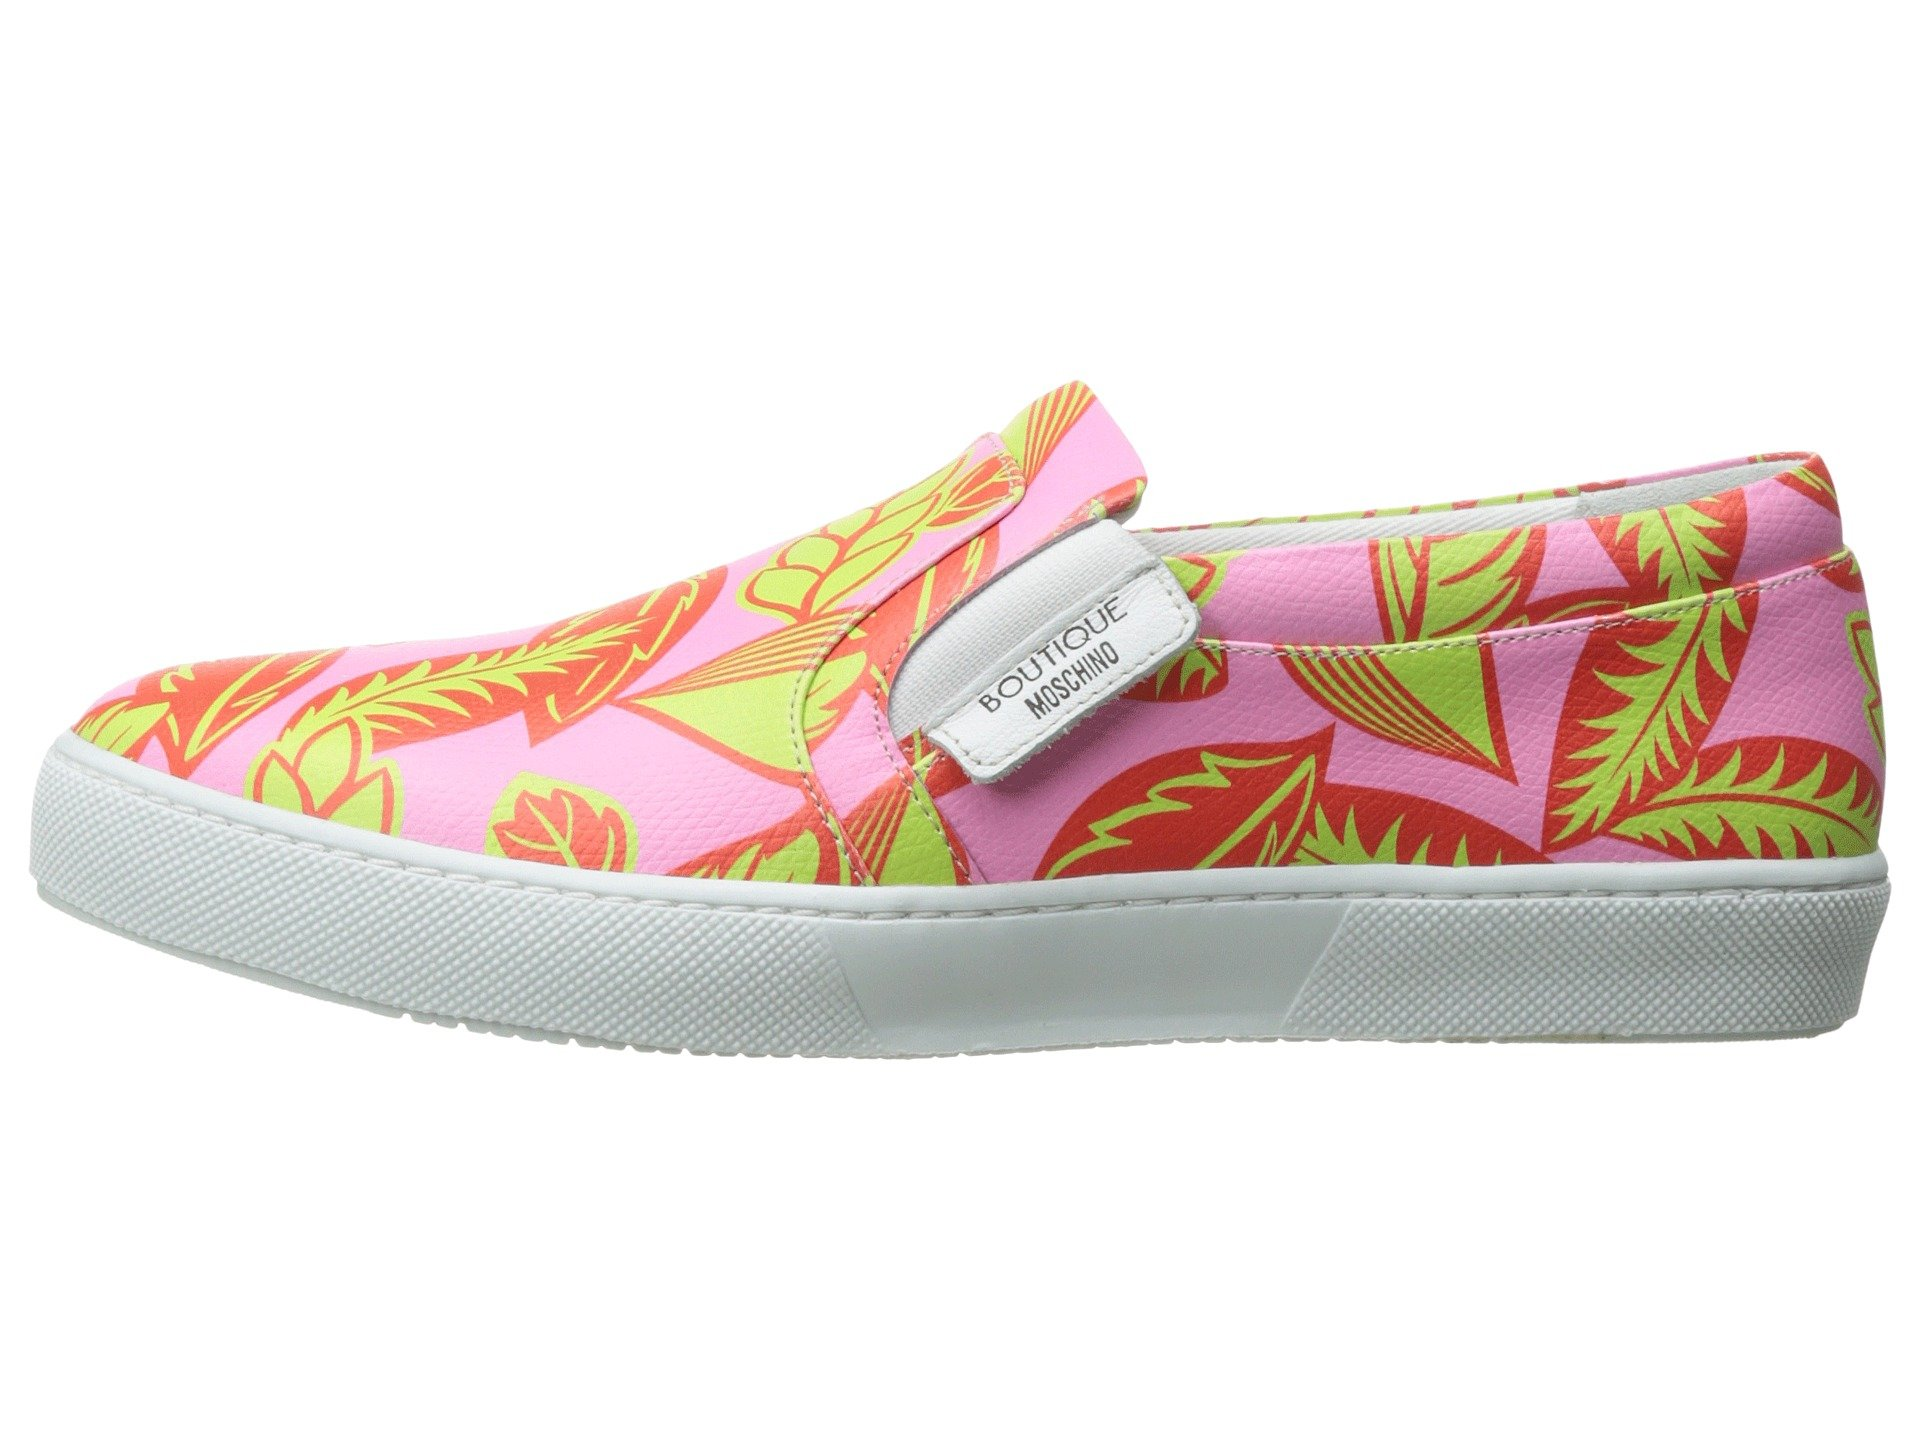 Tropic Slip-On Sneakers Boutique Moschino YWi8ZaR4K